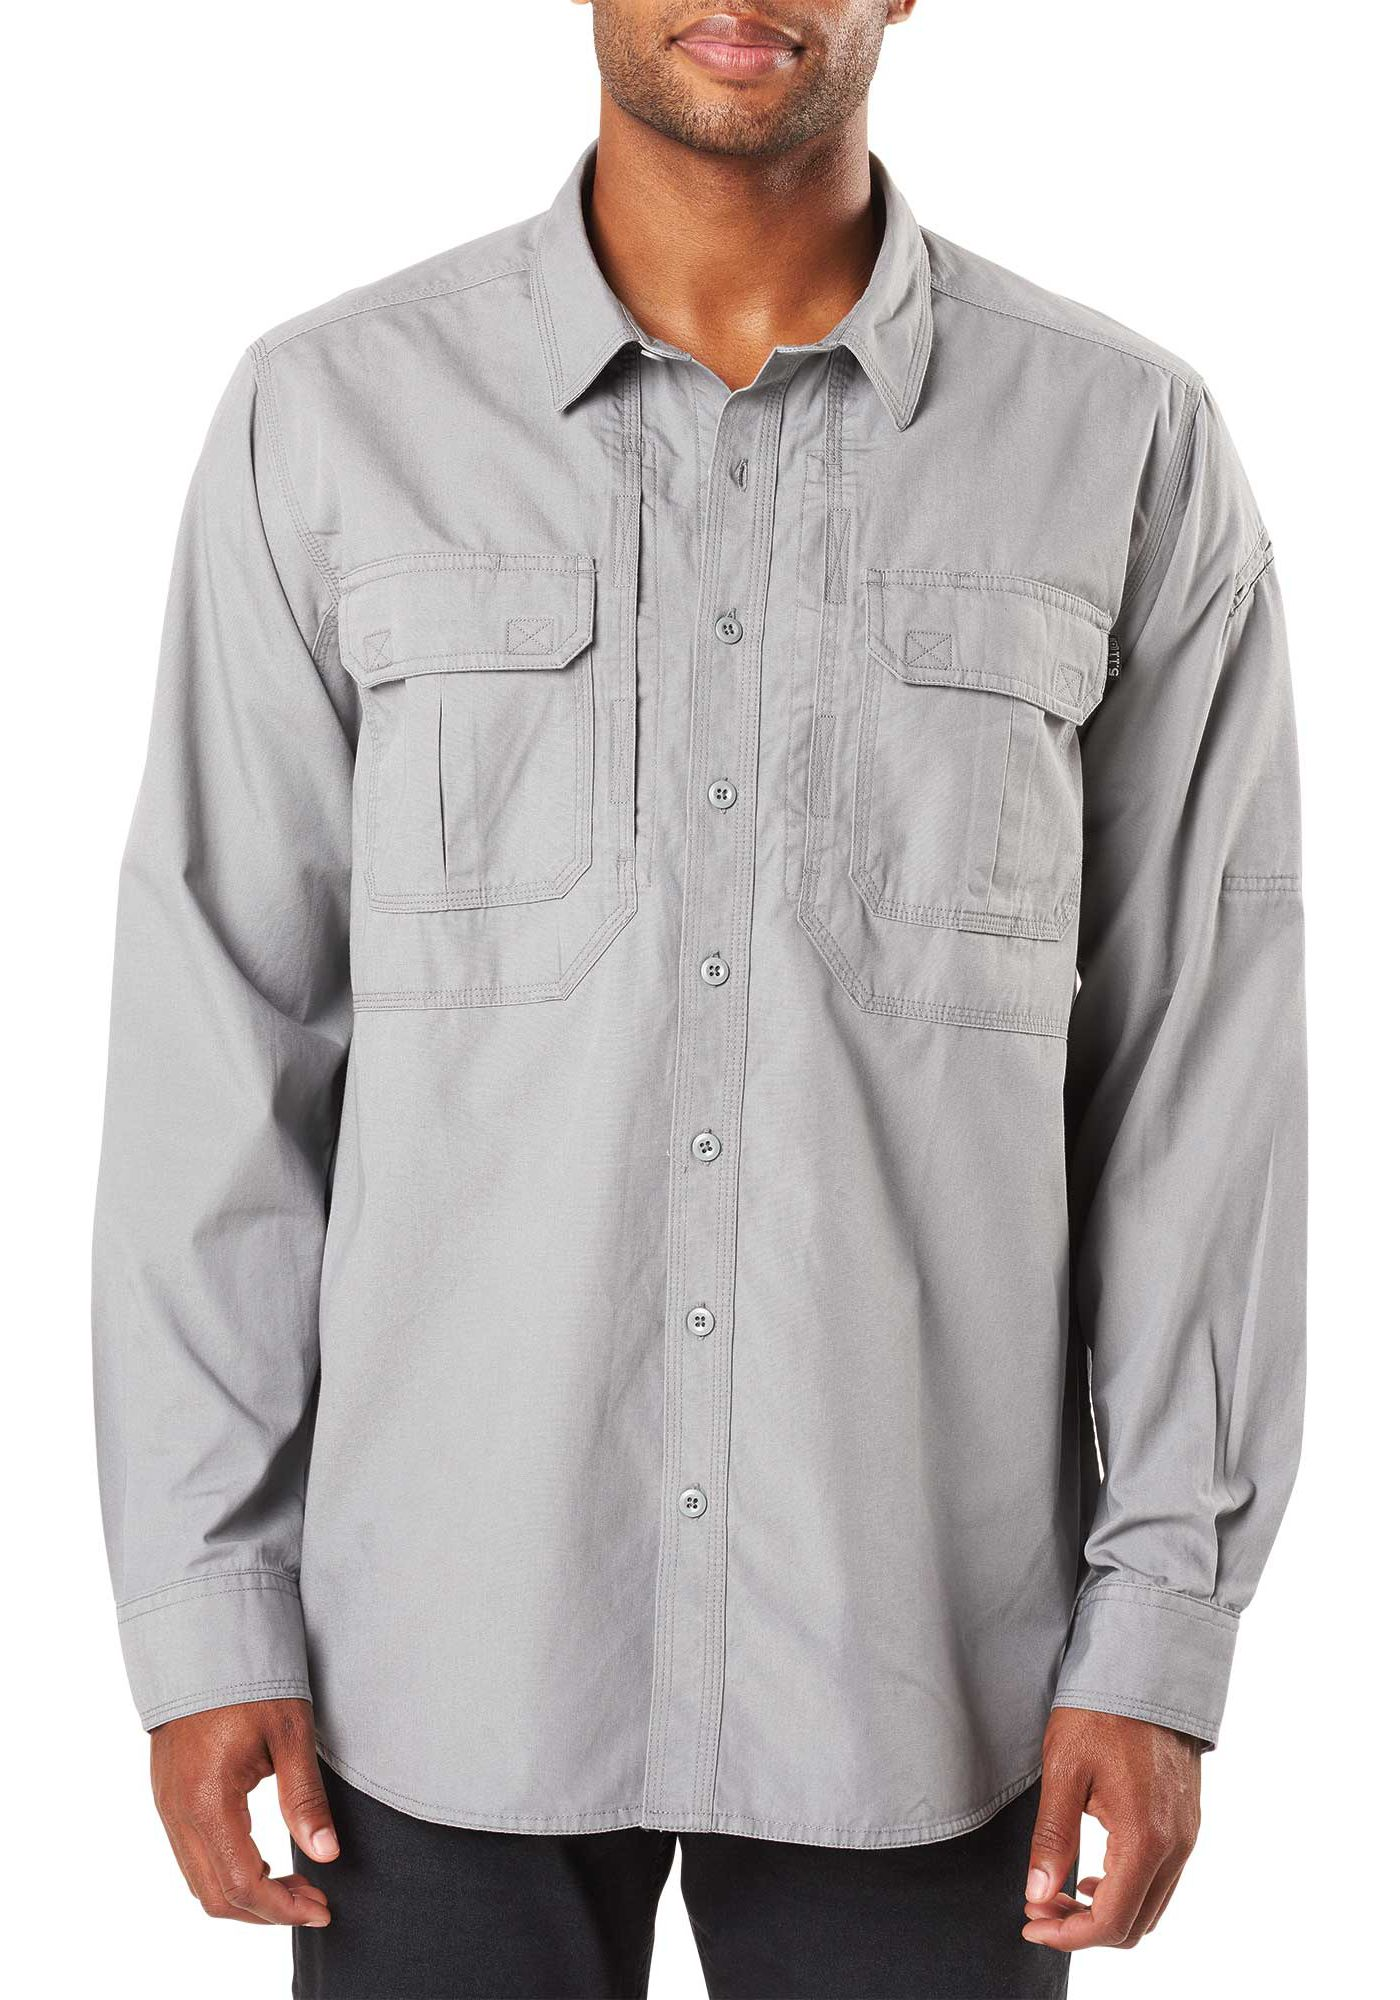 5.11 Tactical Men's Expedition Long Sleeve Button Down Shirt